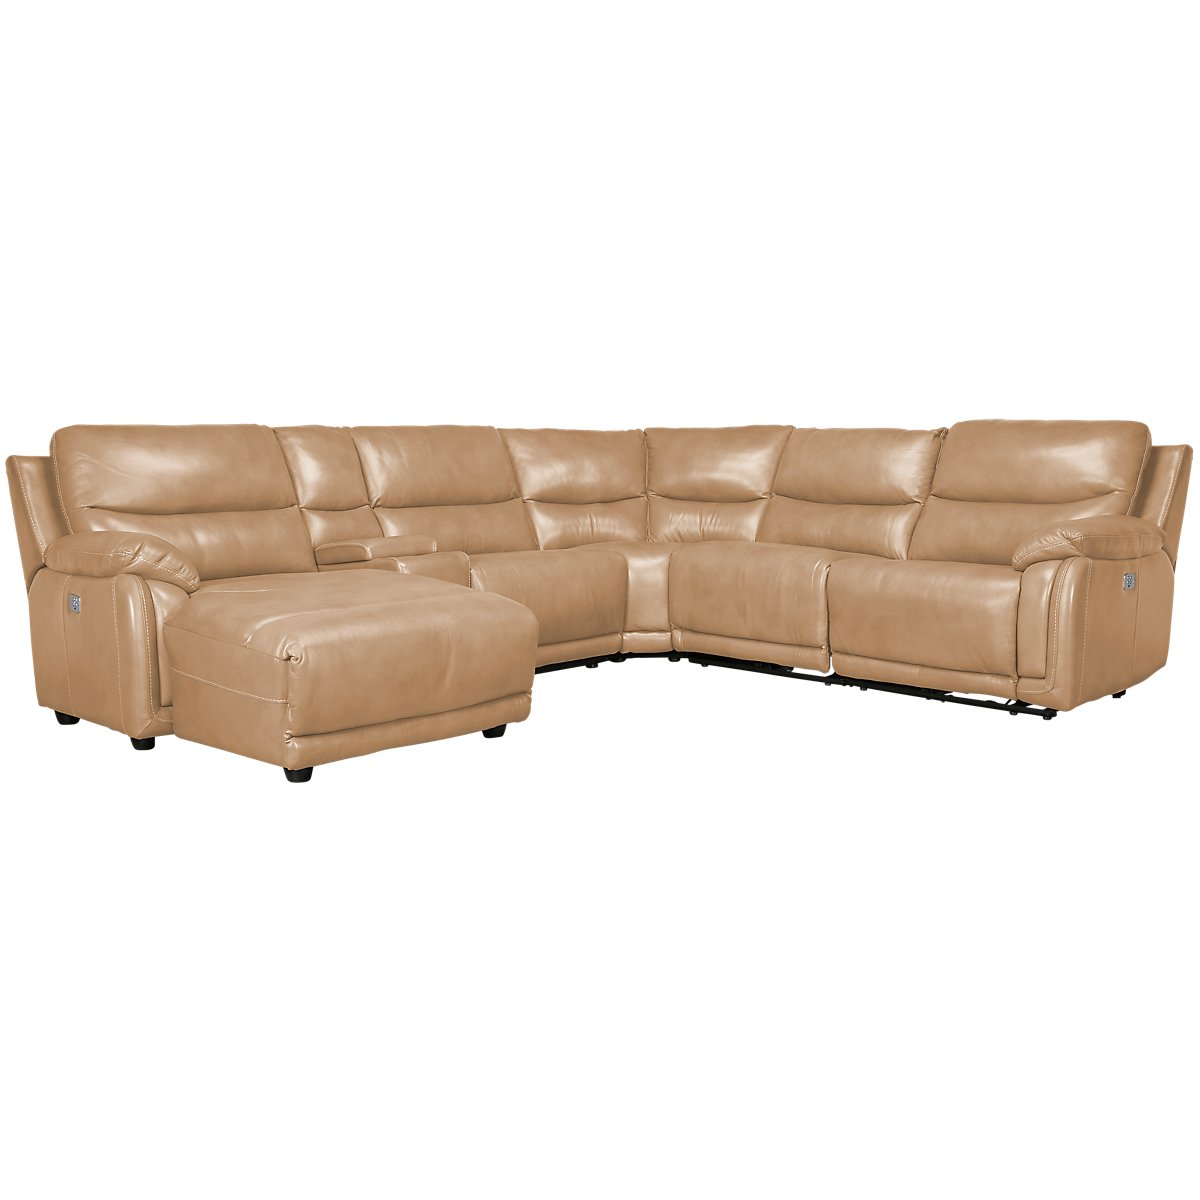 City furniture vince taupe leather left chaise power - Leather reclining sectional with chaise ...